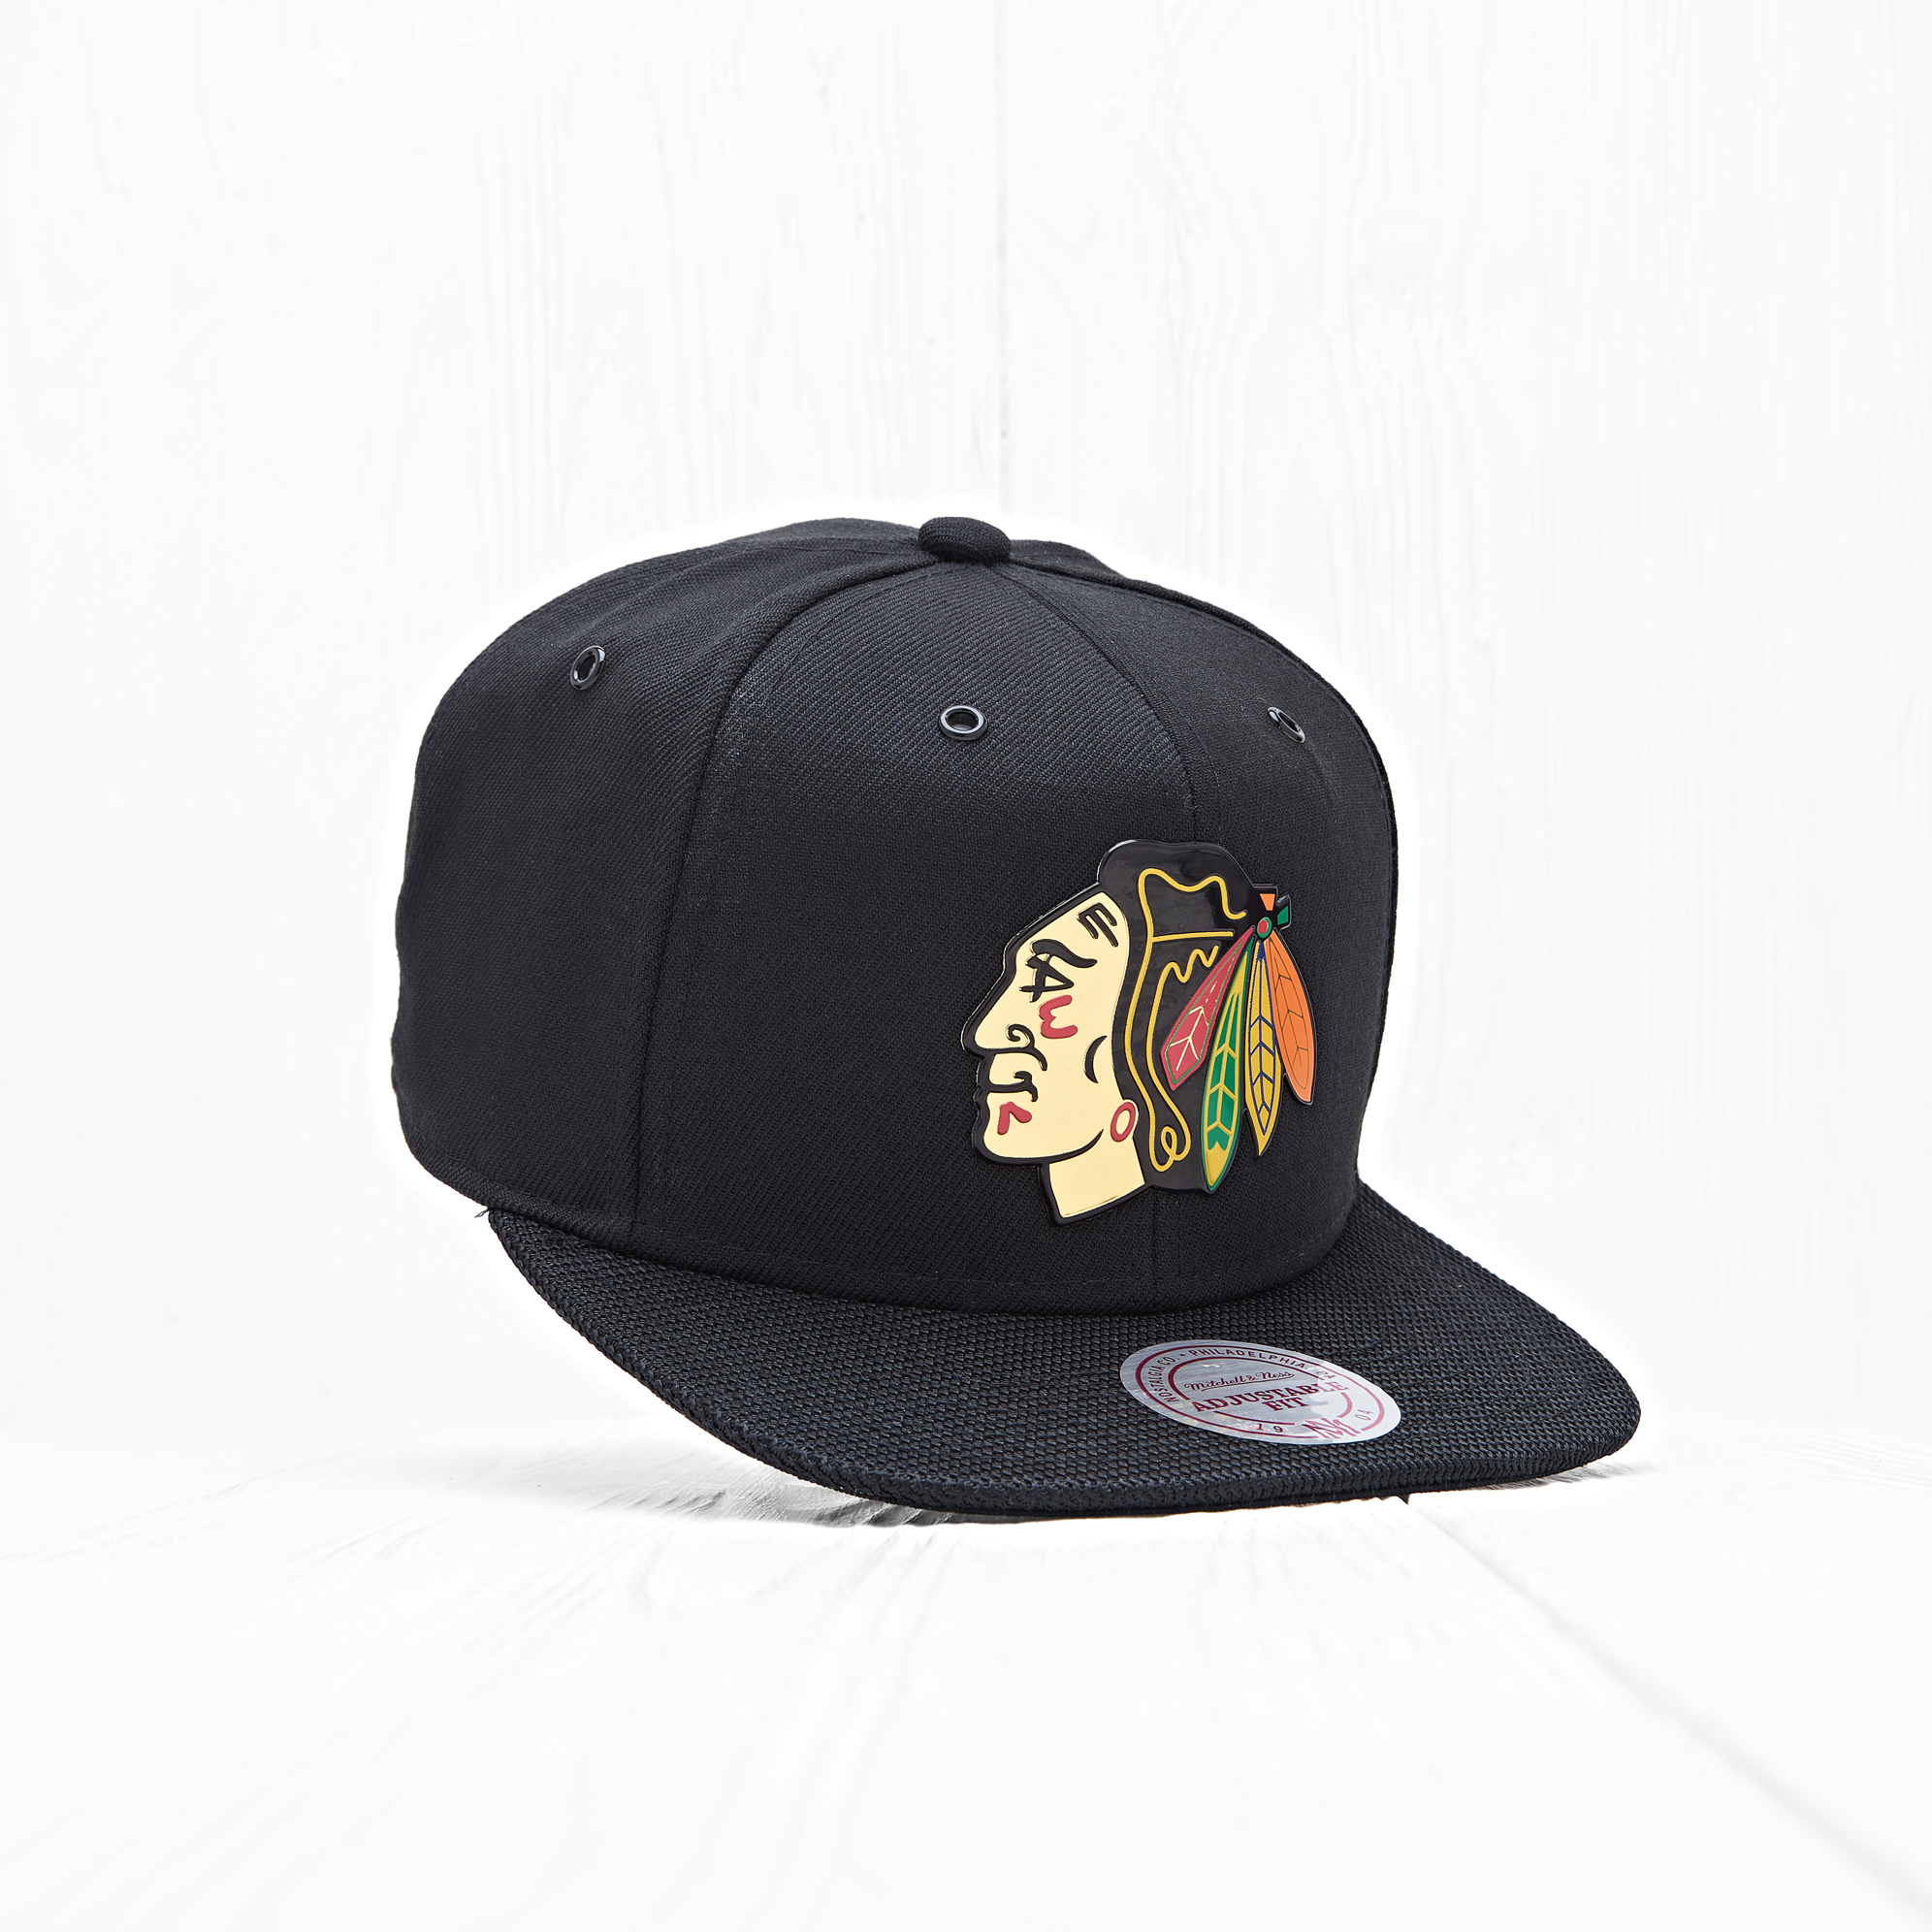 Снепбек Mitchell & Ness NHL CHICAGO BLACKHAWKS Carat Black